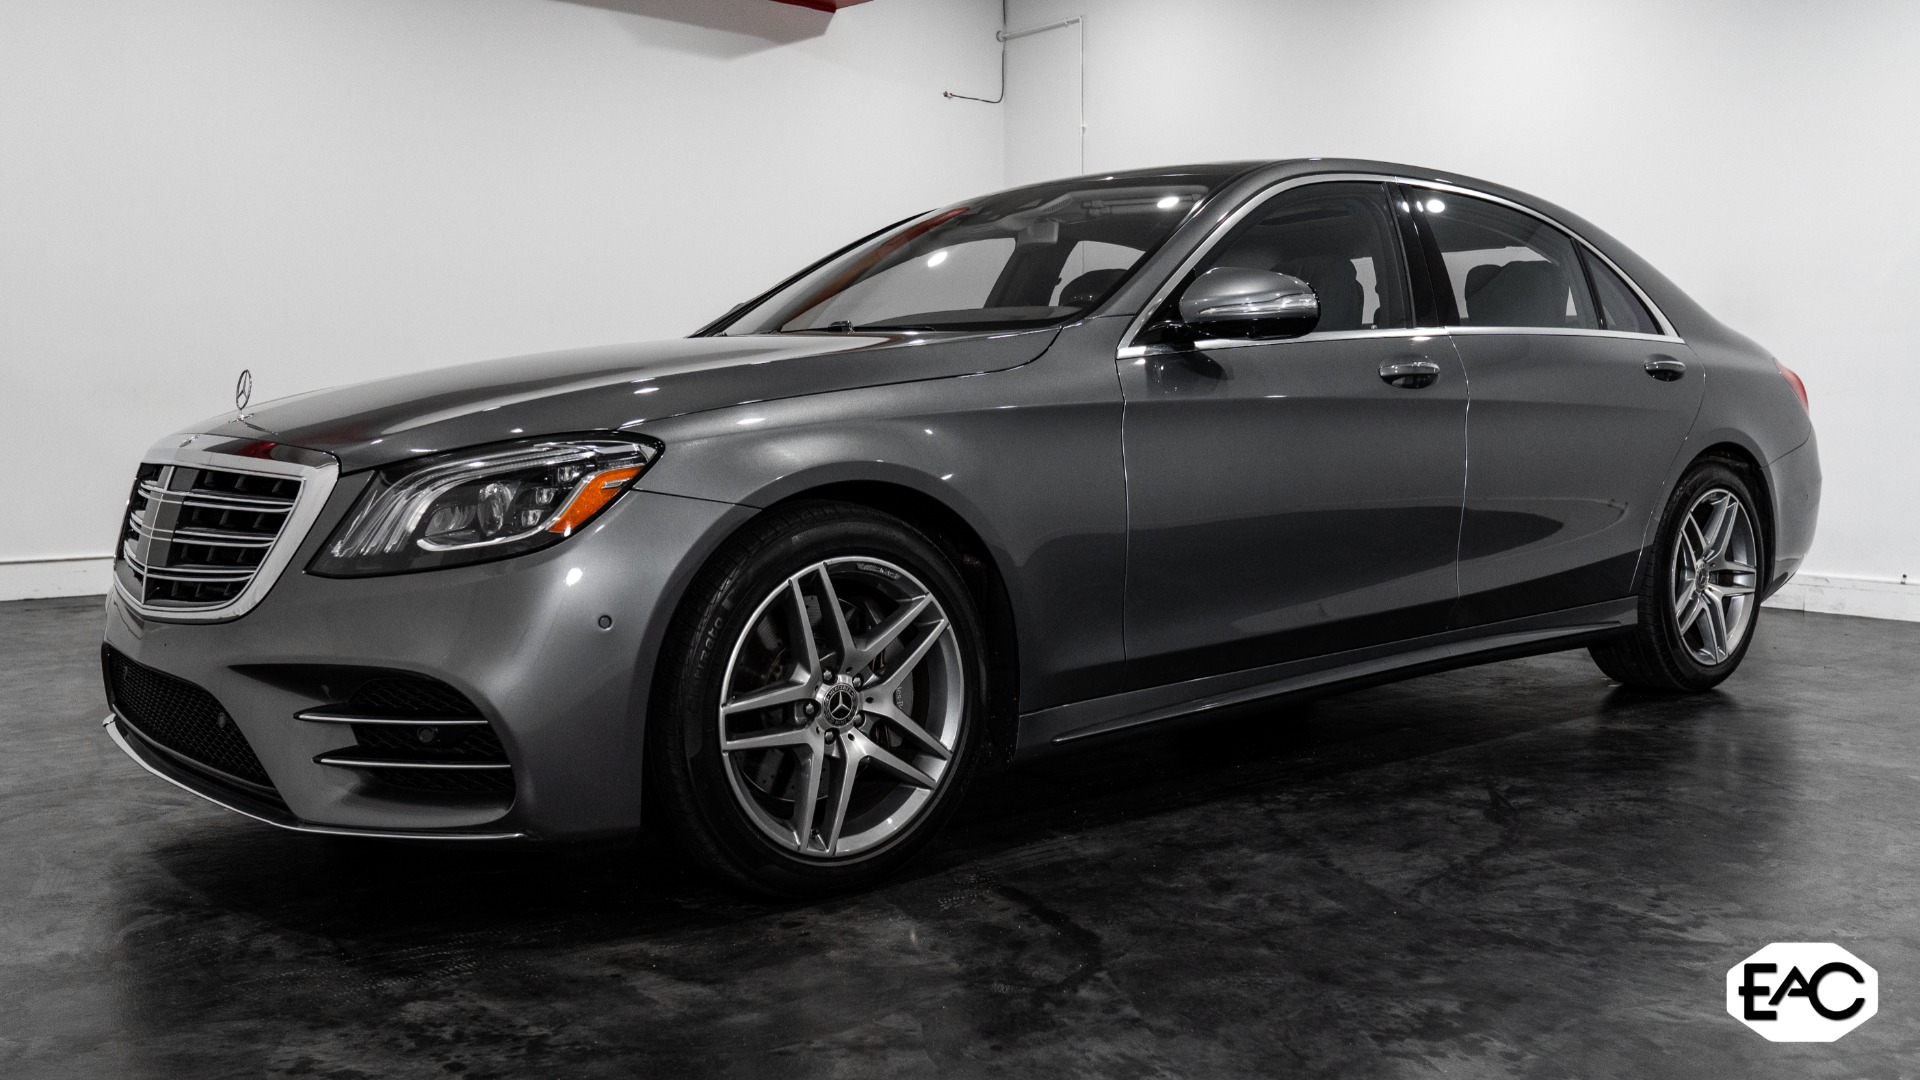 Used 2018 Mercedes-Benz S-Class S 560 4MATIC for sale Sold at Empire Auto Collection in Warren MI 48091 1